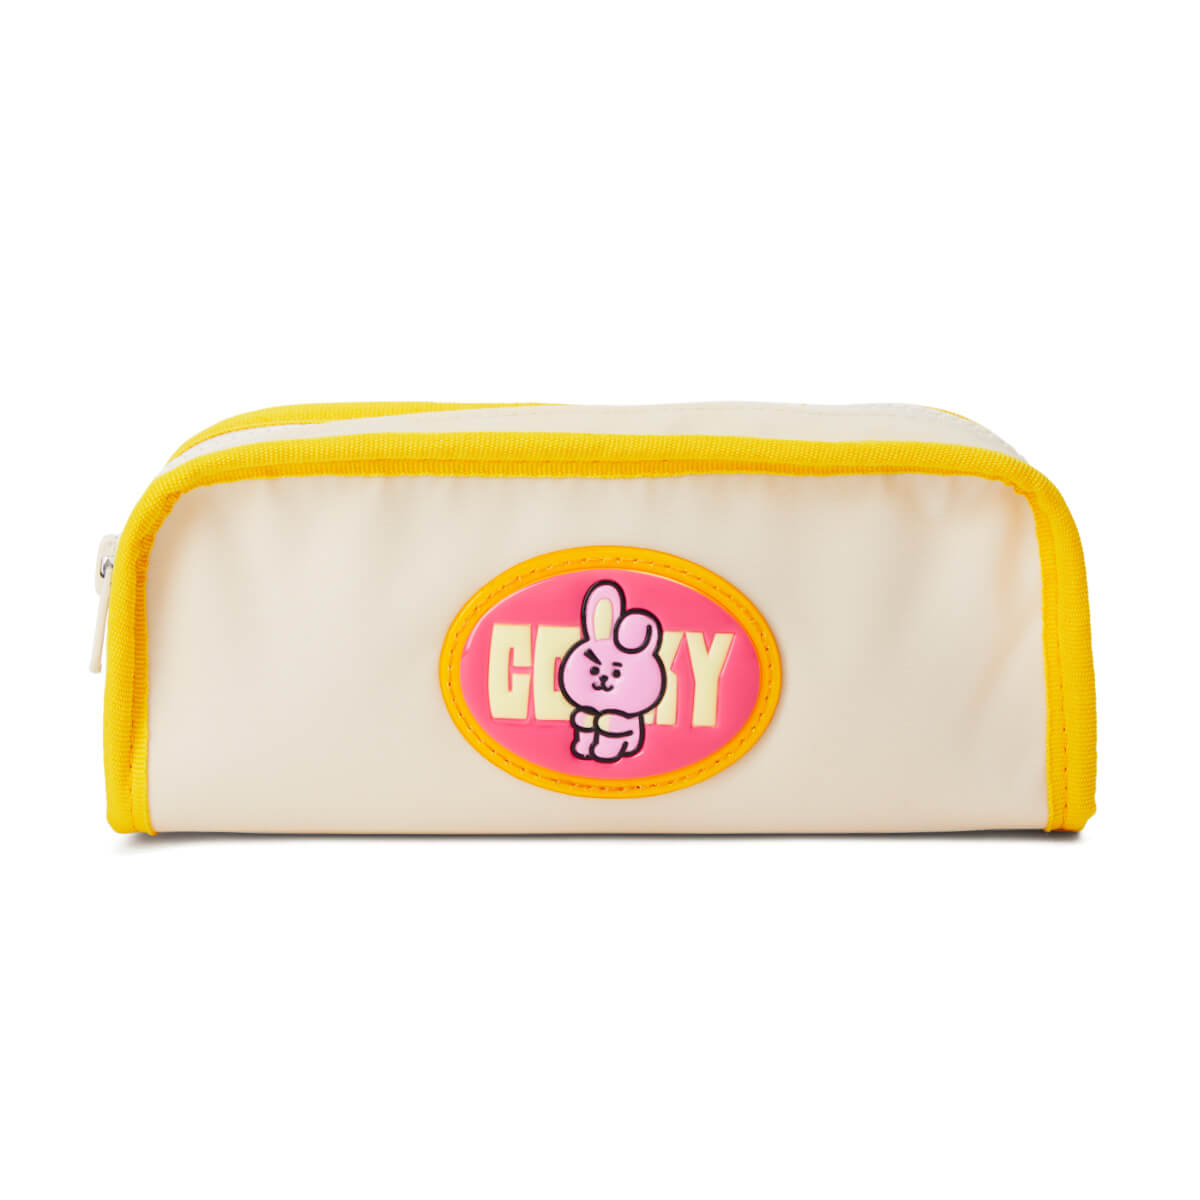 BT21 COOKY Heart Pencil Case